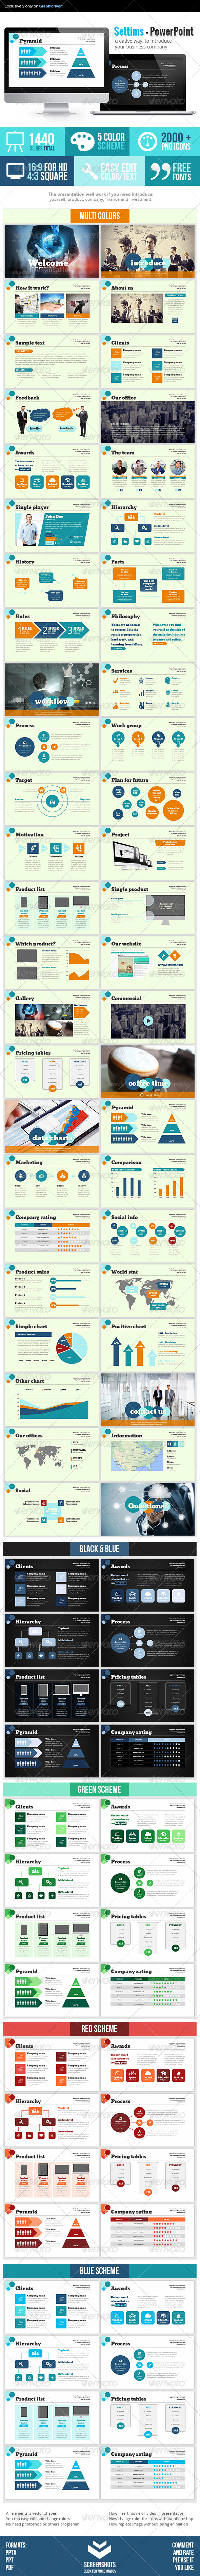 GraphicRiver Settims Powerpoint Presentation 7569287